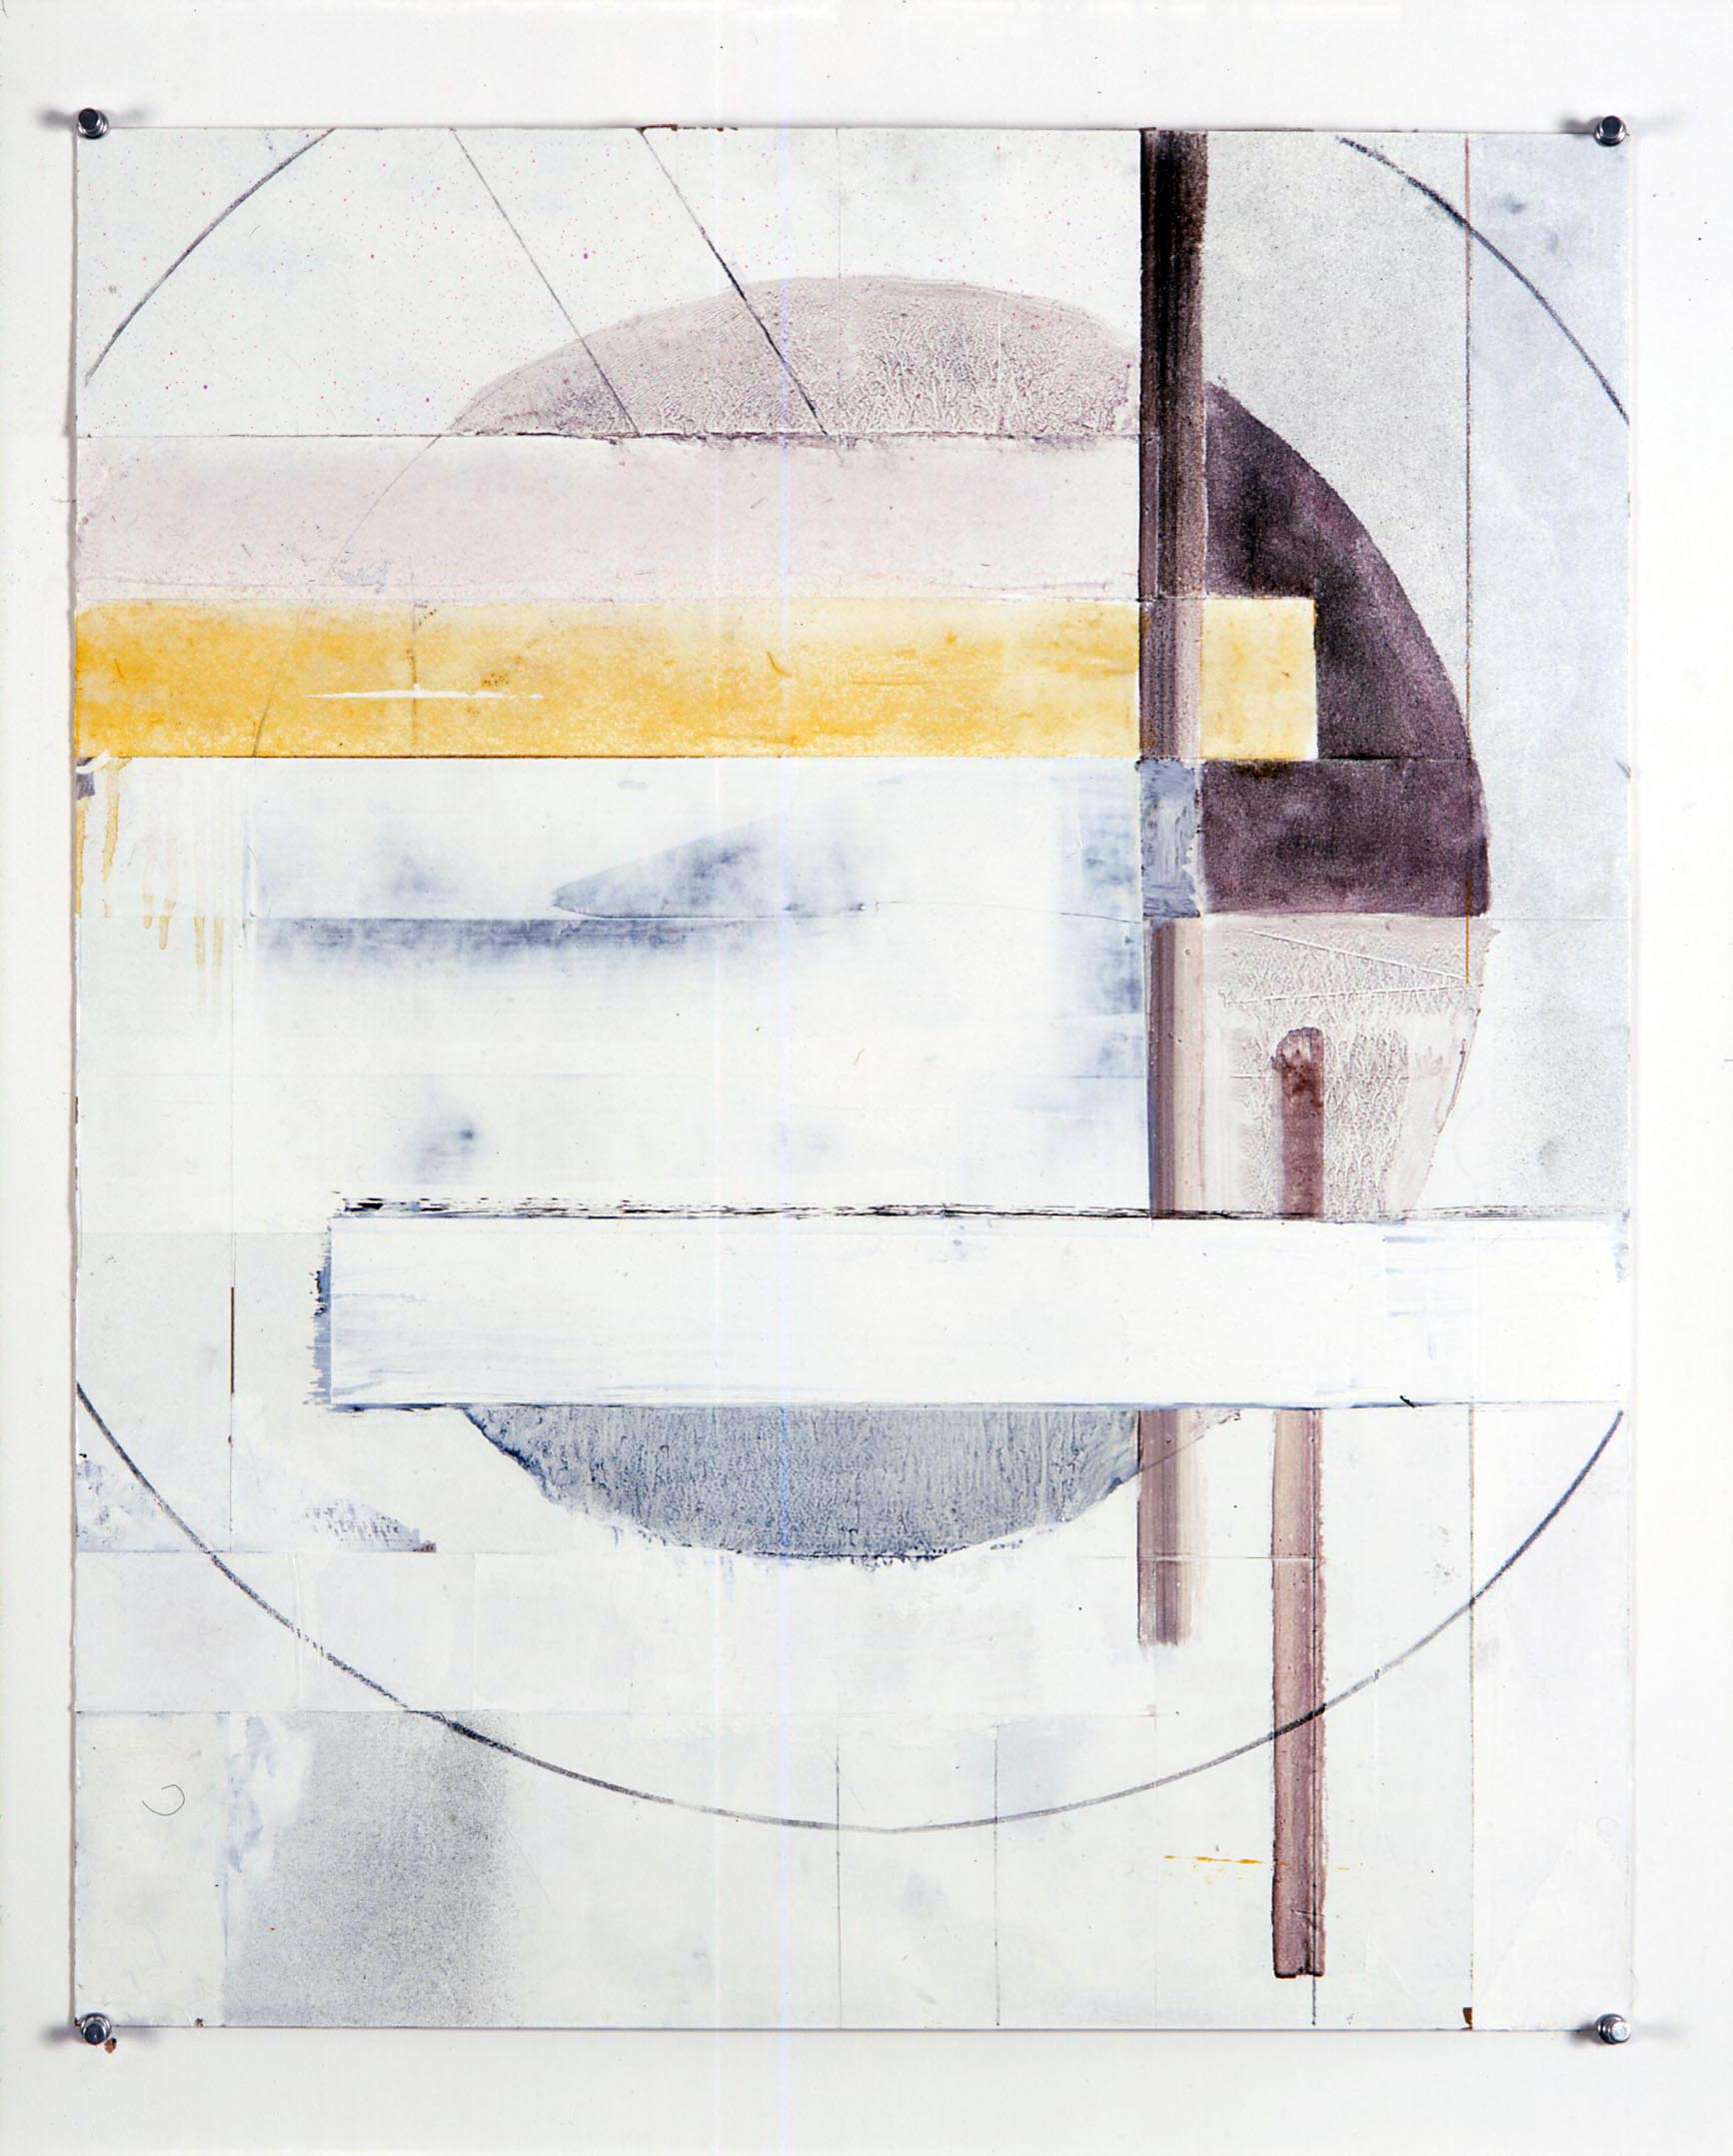 Untitled   2005   oil, spray paint, tape and graphite on card   59.5x49cm